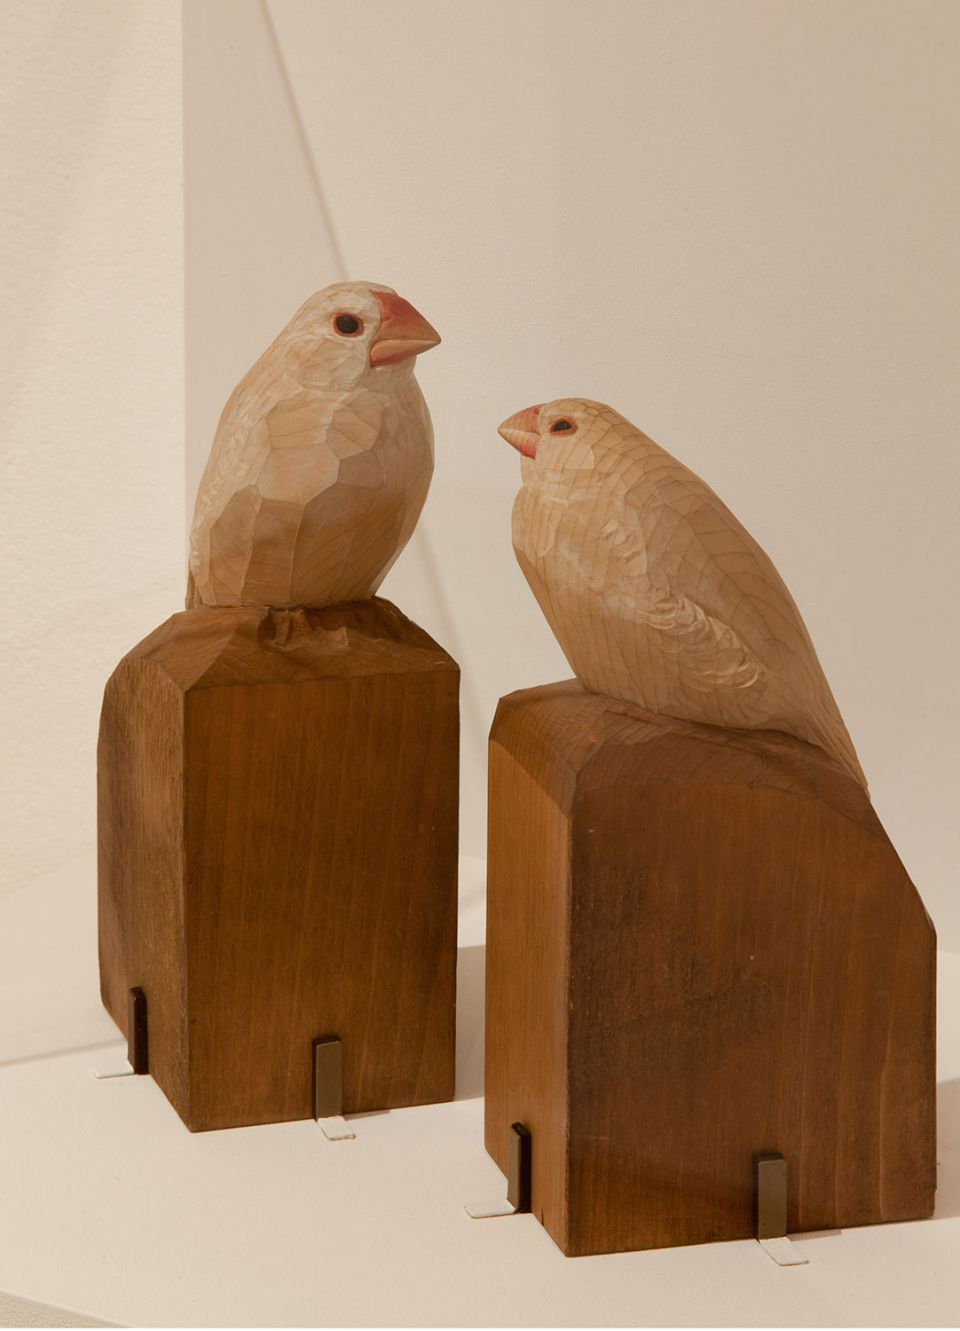 Installation view of A Study of Modern Japanese Sculpture, showing Kotaro Takamura's 'A Couple of White Paddy-Birds' (c.1931, painted wood)